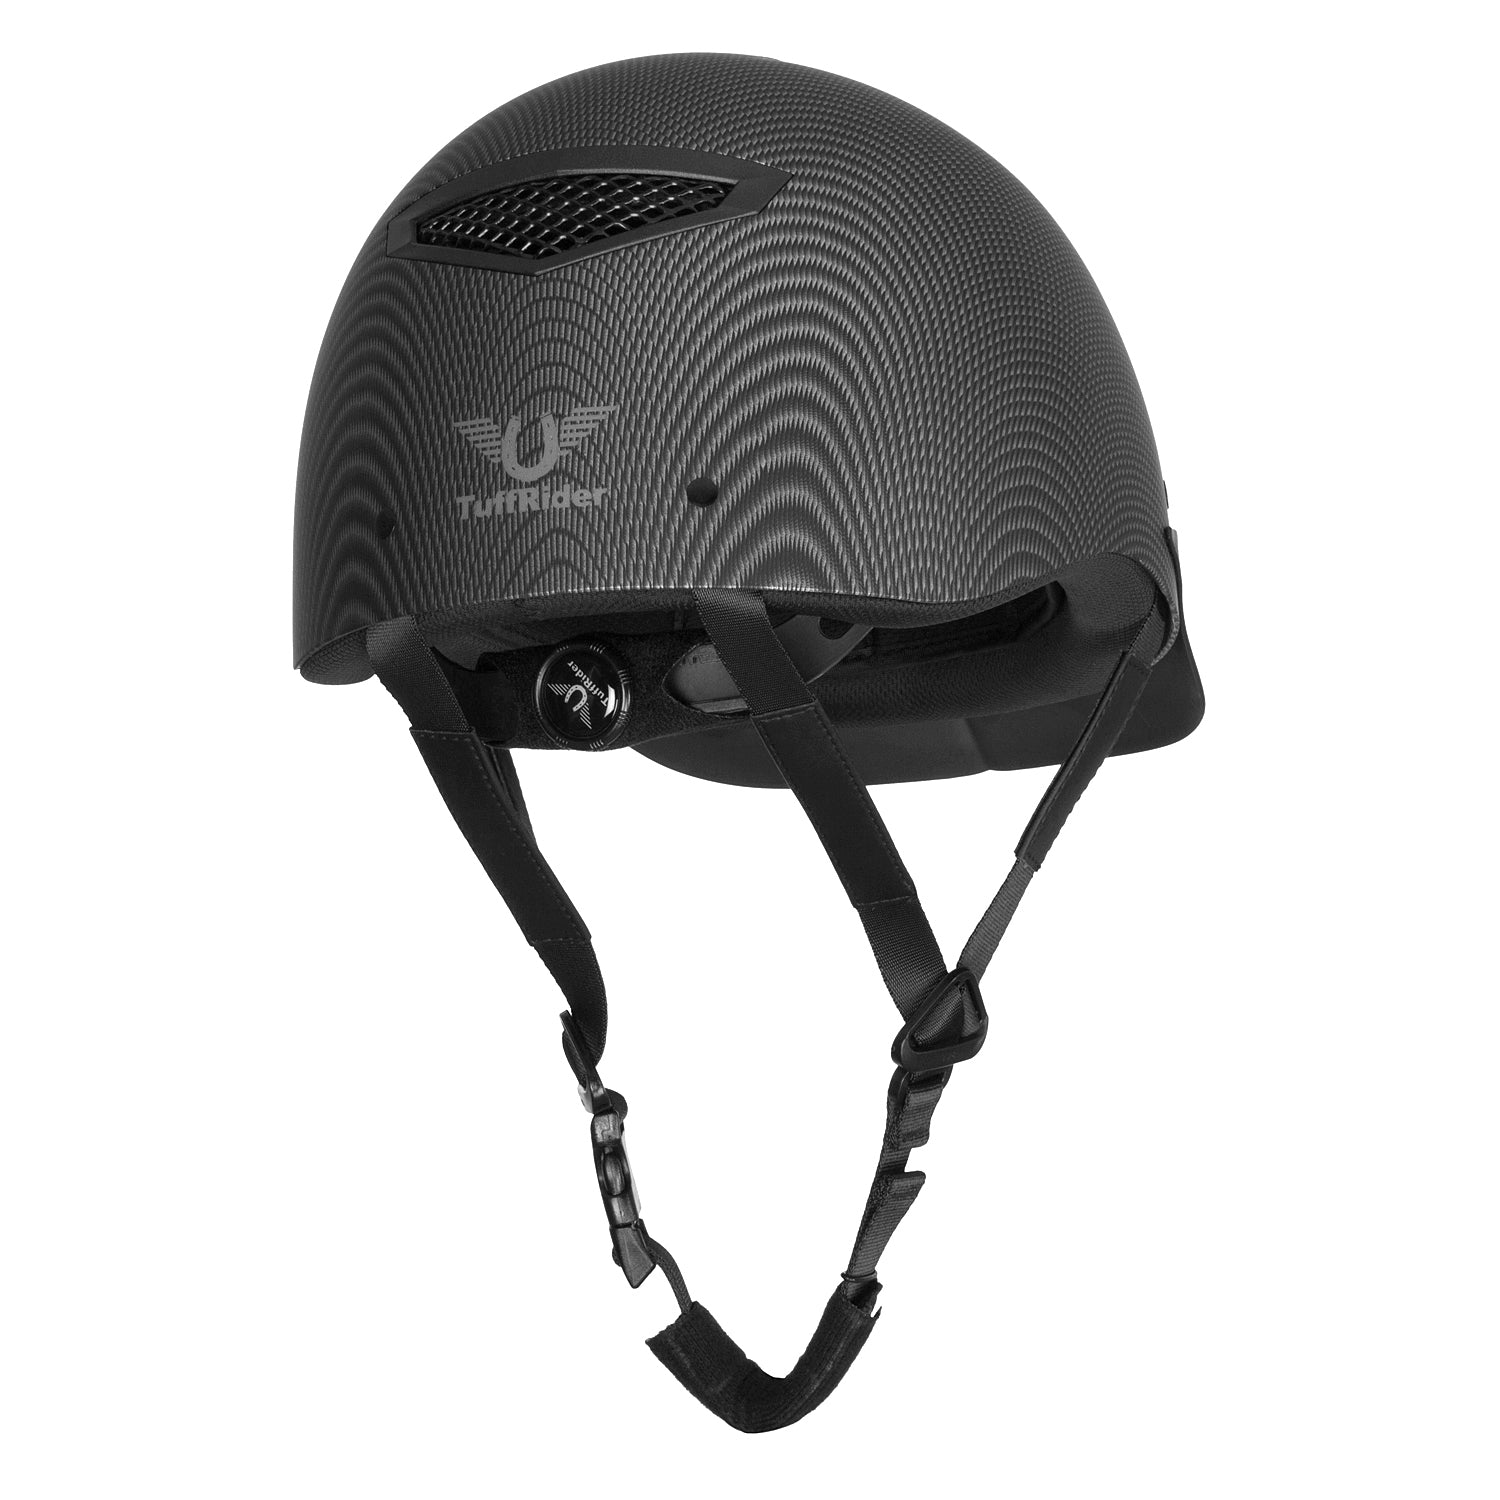 TuffRider Carbon Fiber Shell Helmet| Schooling Protective Head Gear for Equestrian Riders - SEI Certified, Tough and Durable - Black - TuffRider - Breeches.com